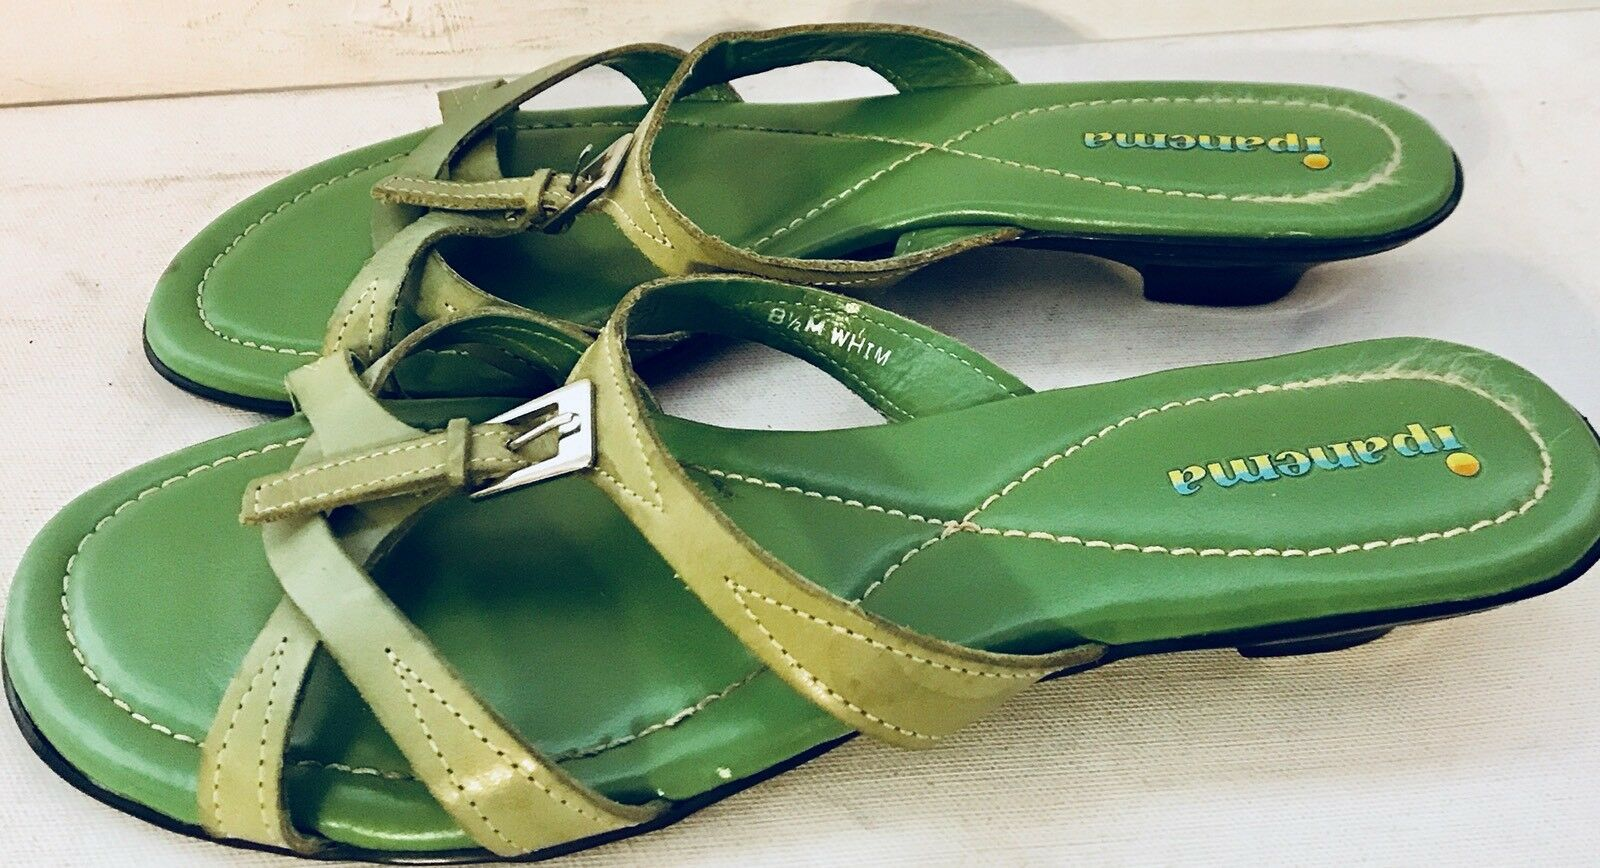 Ipanema Leather Green Brazilian Sandals Slides Strappy Green Leather Buckle Wmens Sz 8.5M Whim 5872b9